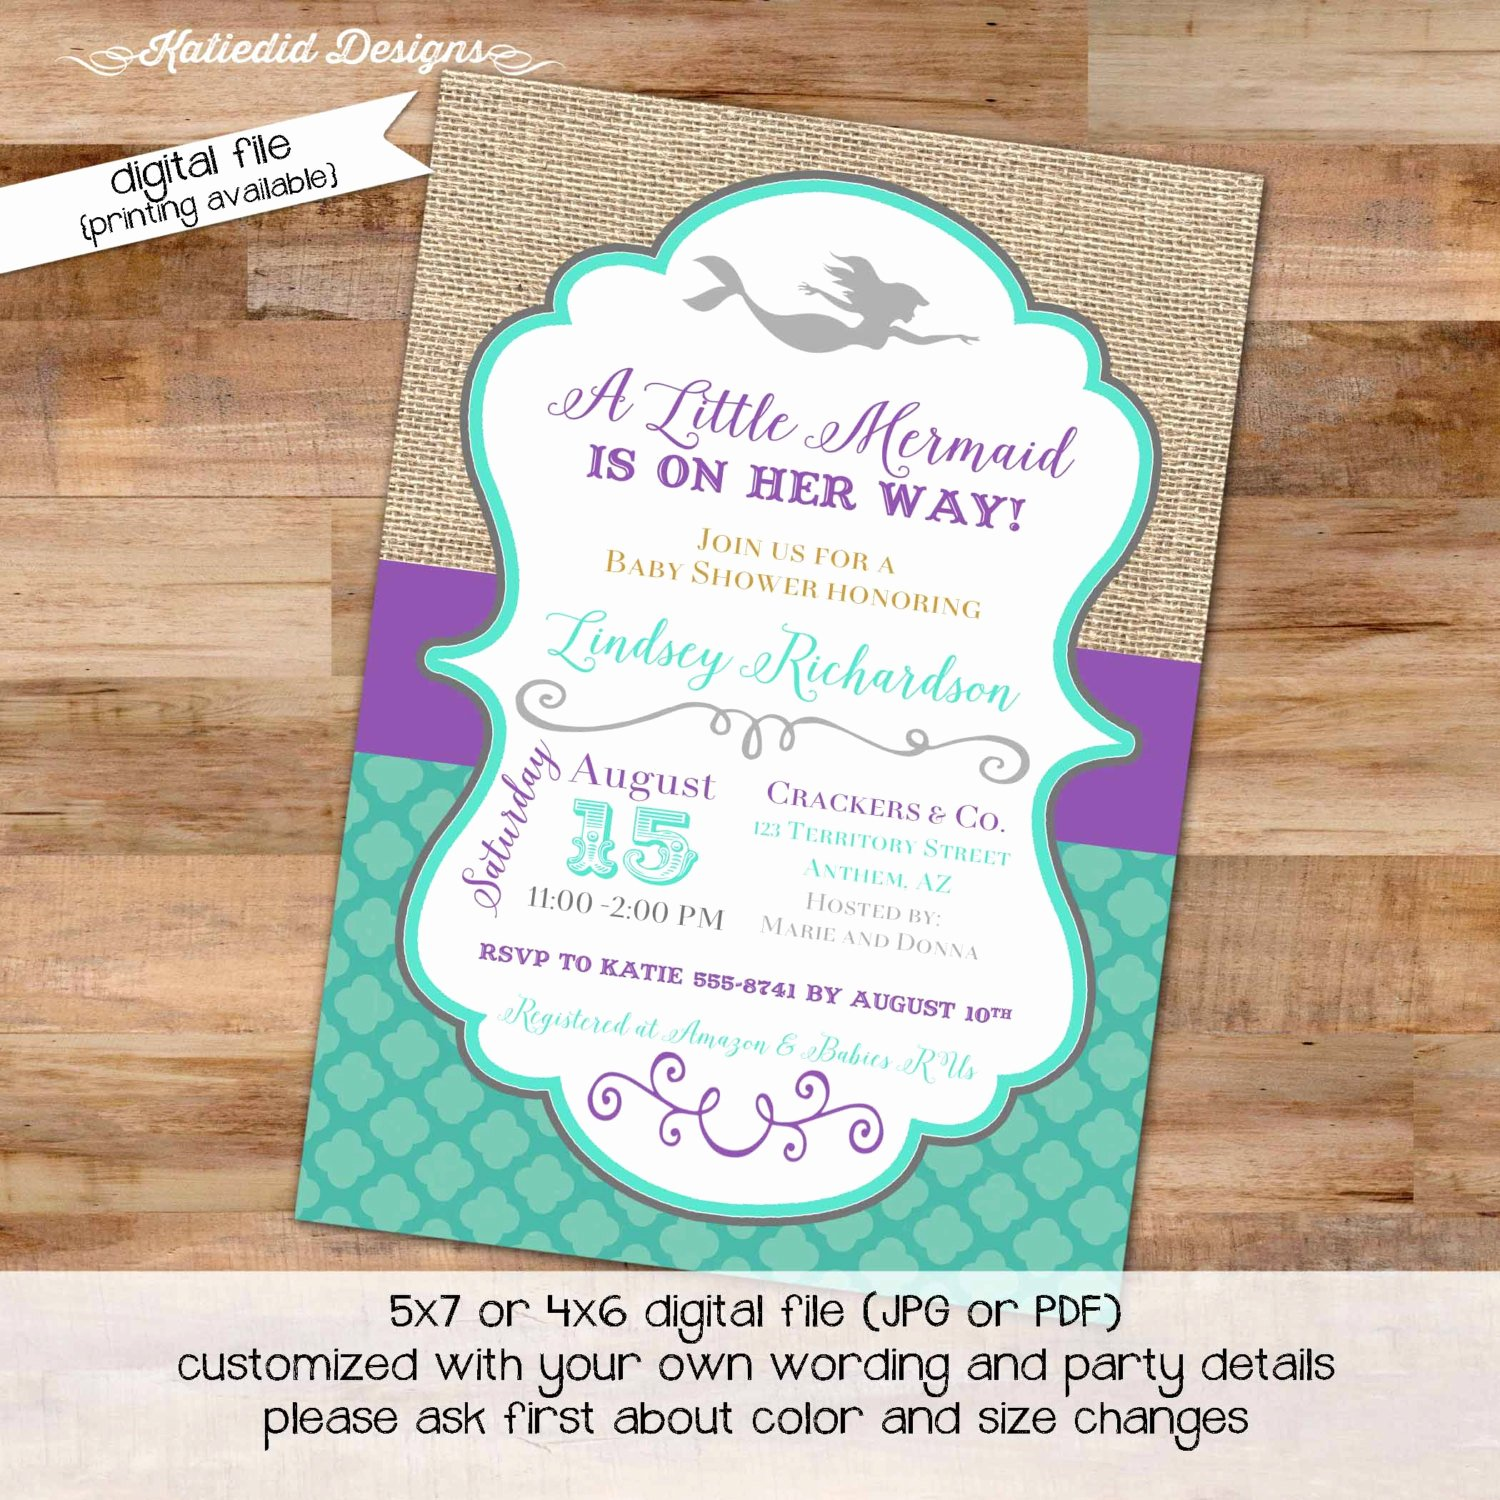 Mermaid Baby Shower Invitations Beautiful Mermaid Invitation Couples Baby Shower Purple Teal 1st